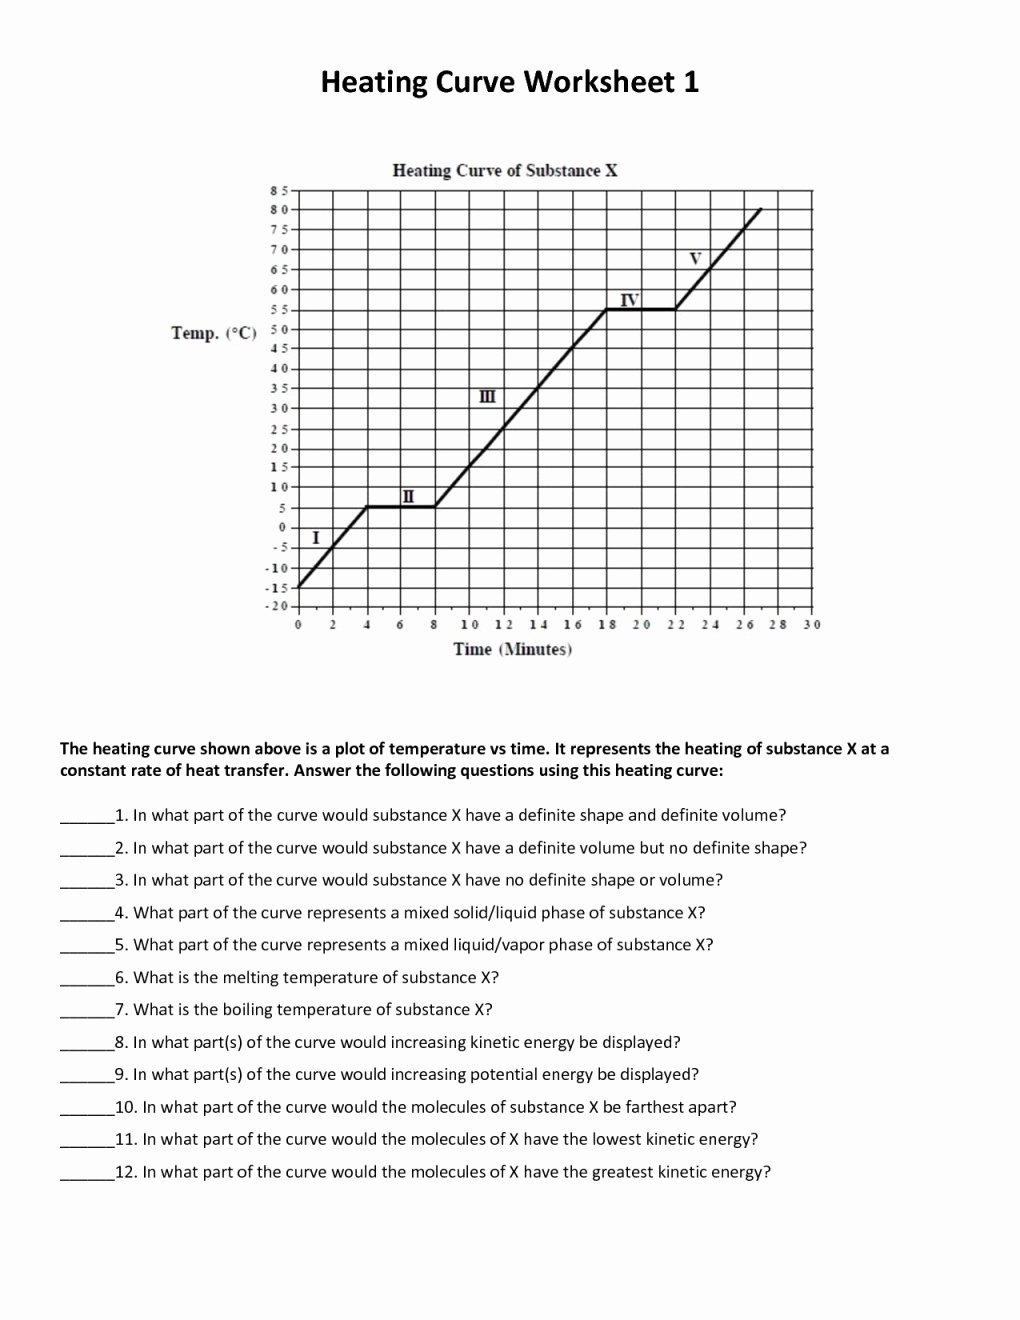 Heating and Cooling Curve Worksheet Fresh Heating and Cooling Curves Worksheet